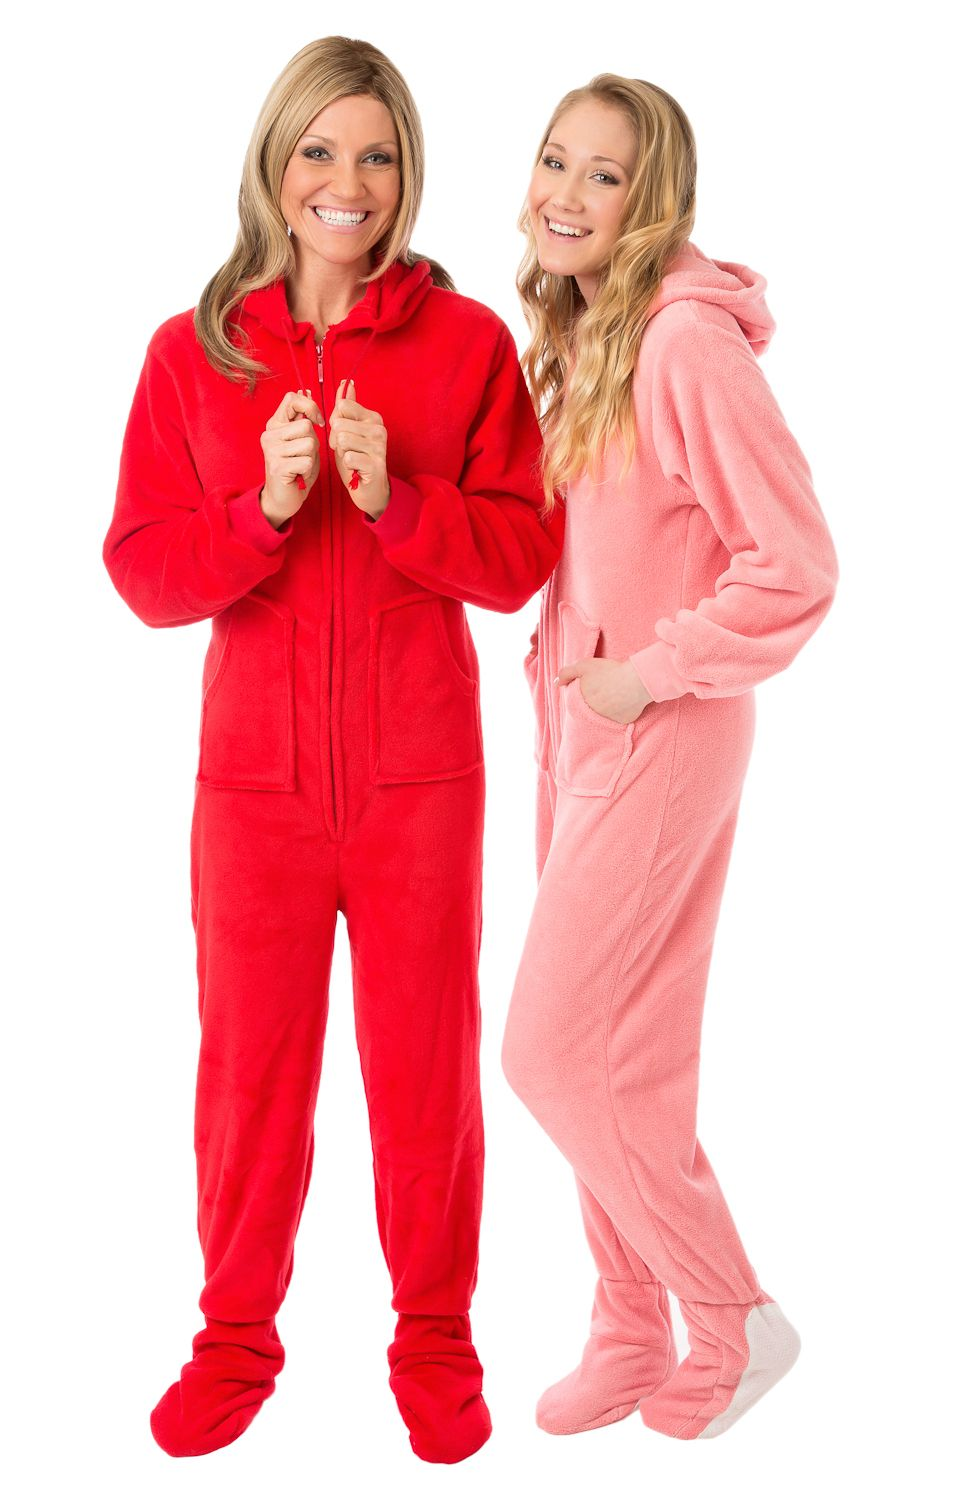 Highest quality plush loungewear or sleepwear. These plush hoodie footed  pajamas are so comfy d4d7dfd3f